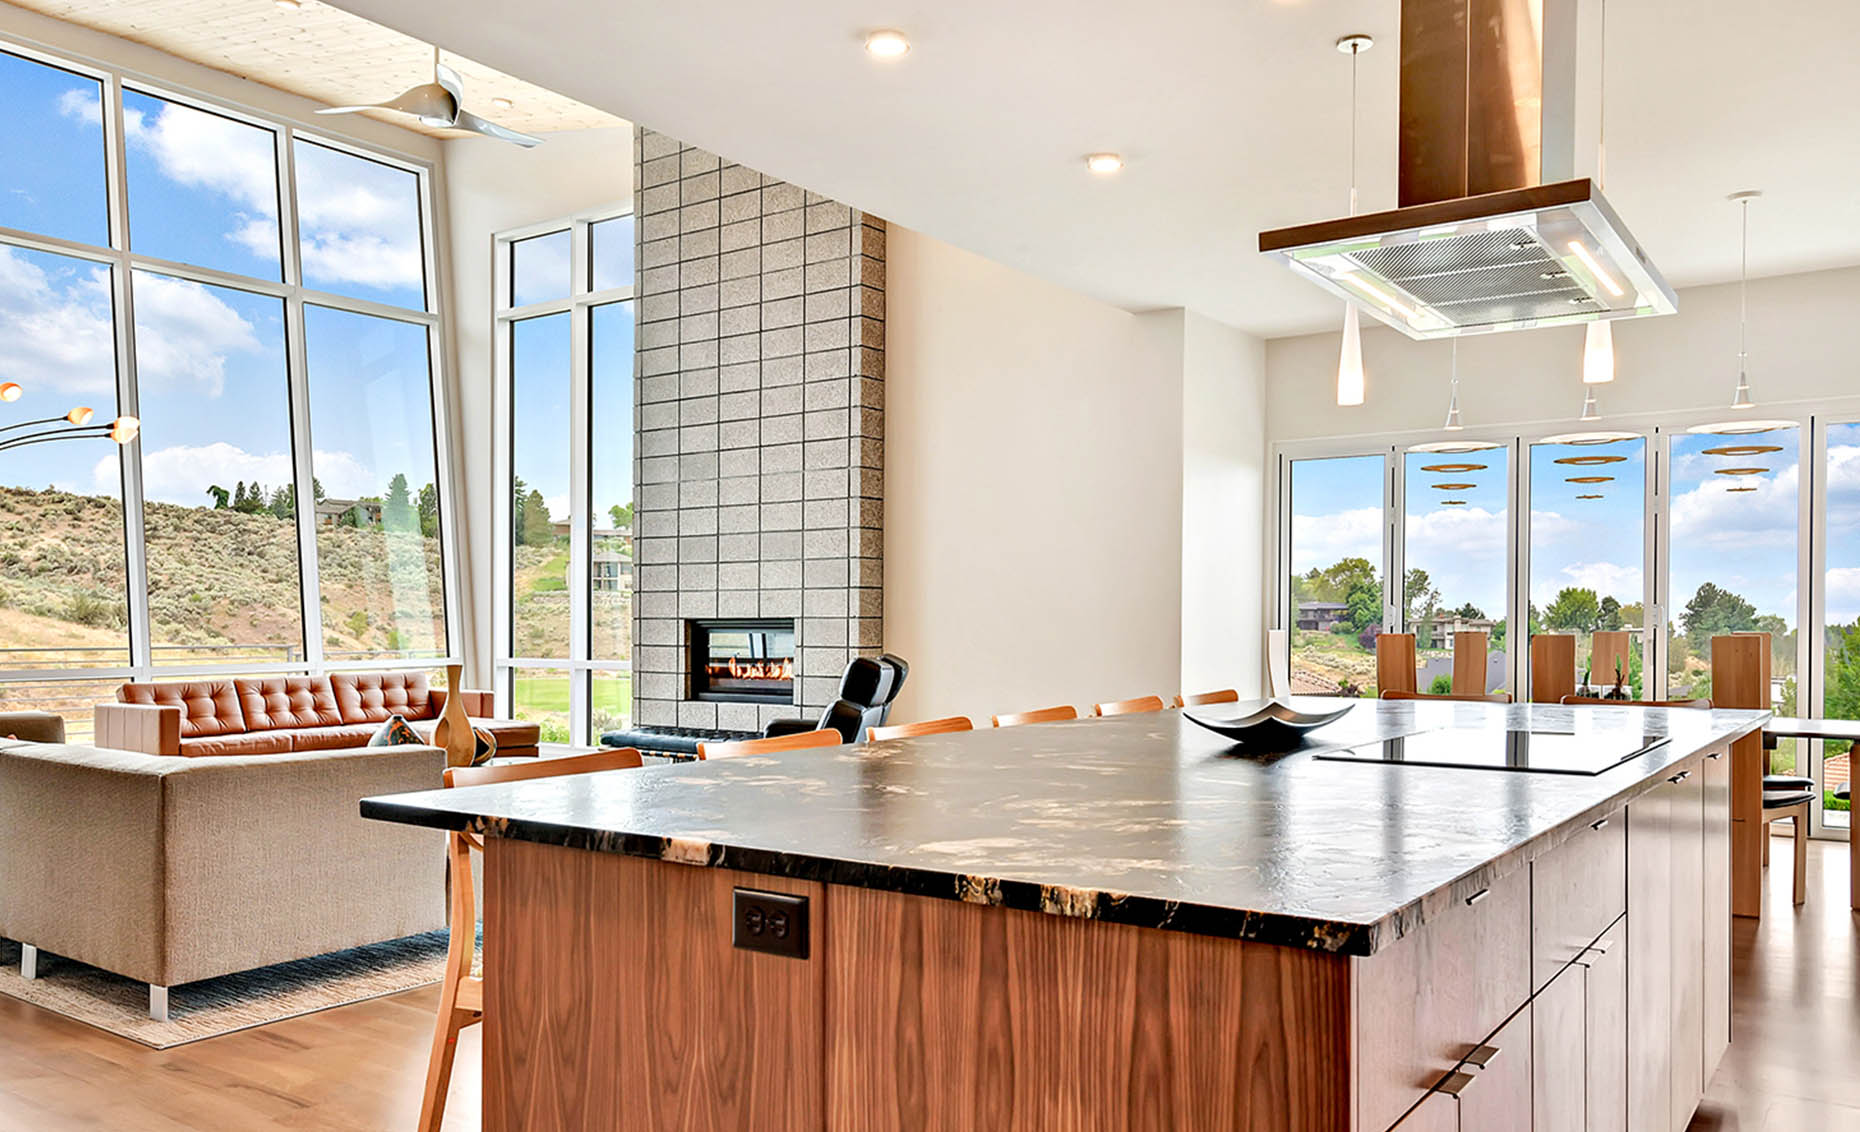 The Nature View Custom Home Kitchen and Living Room